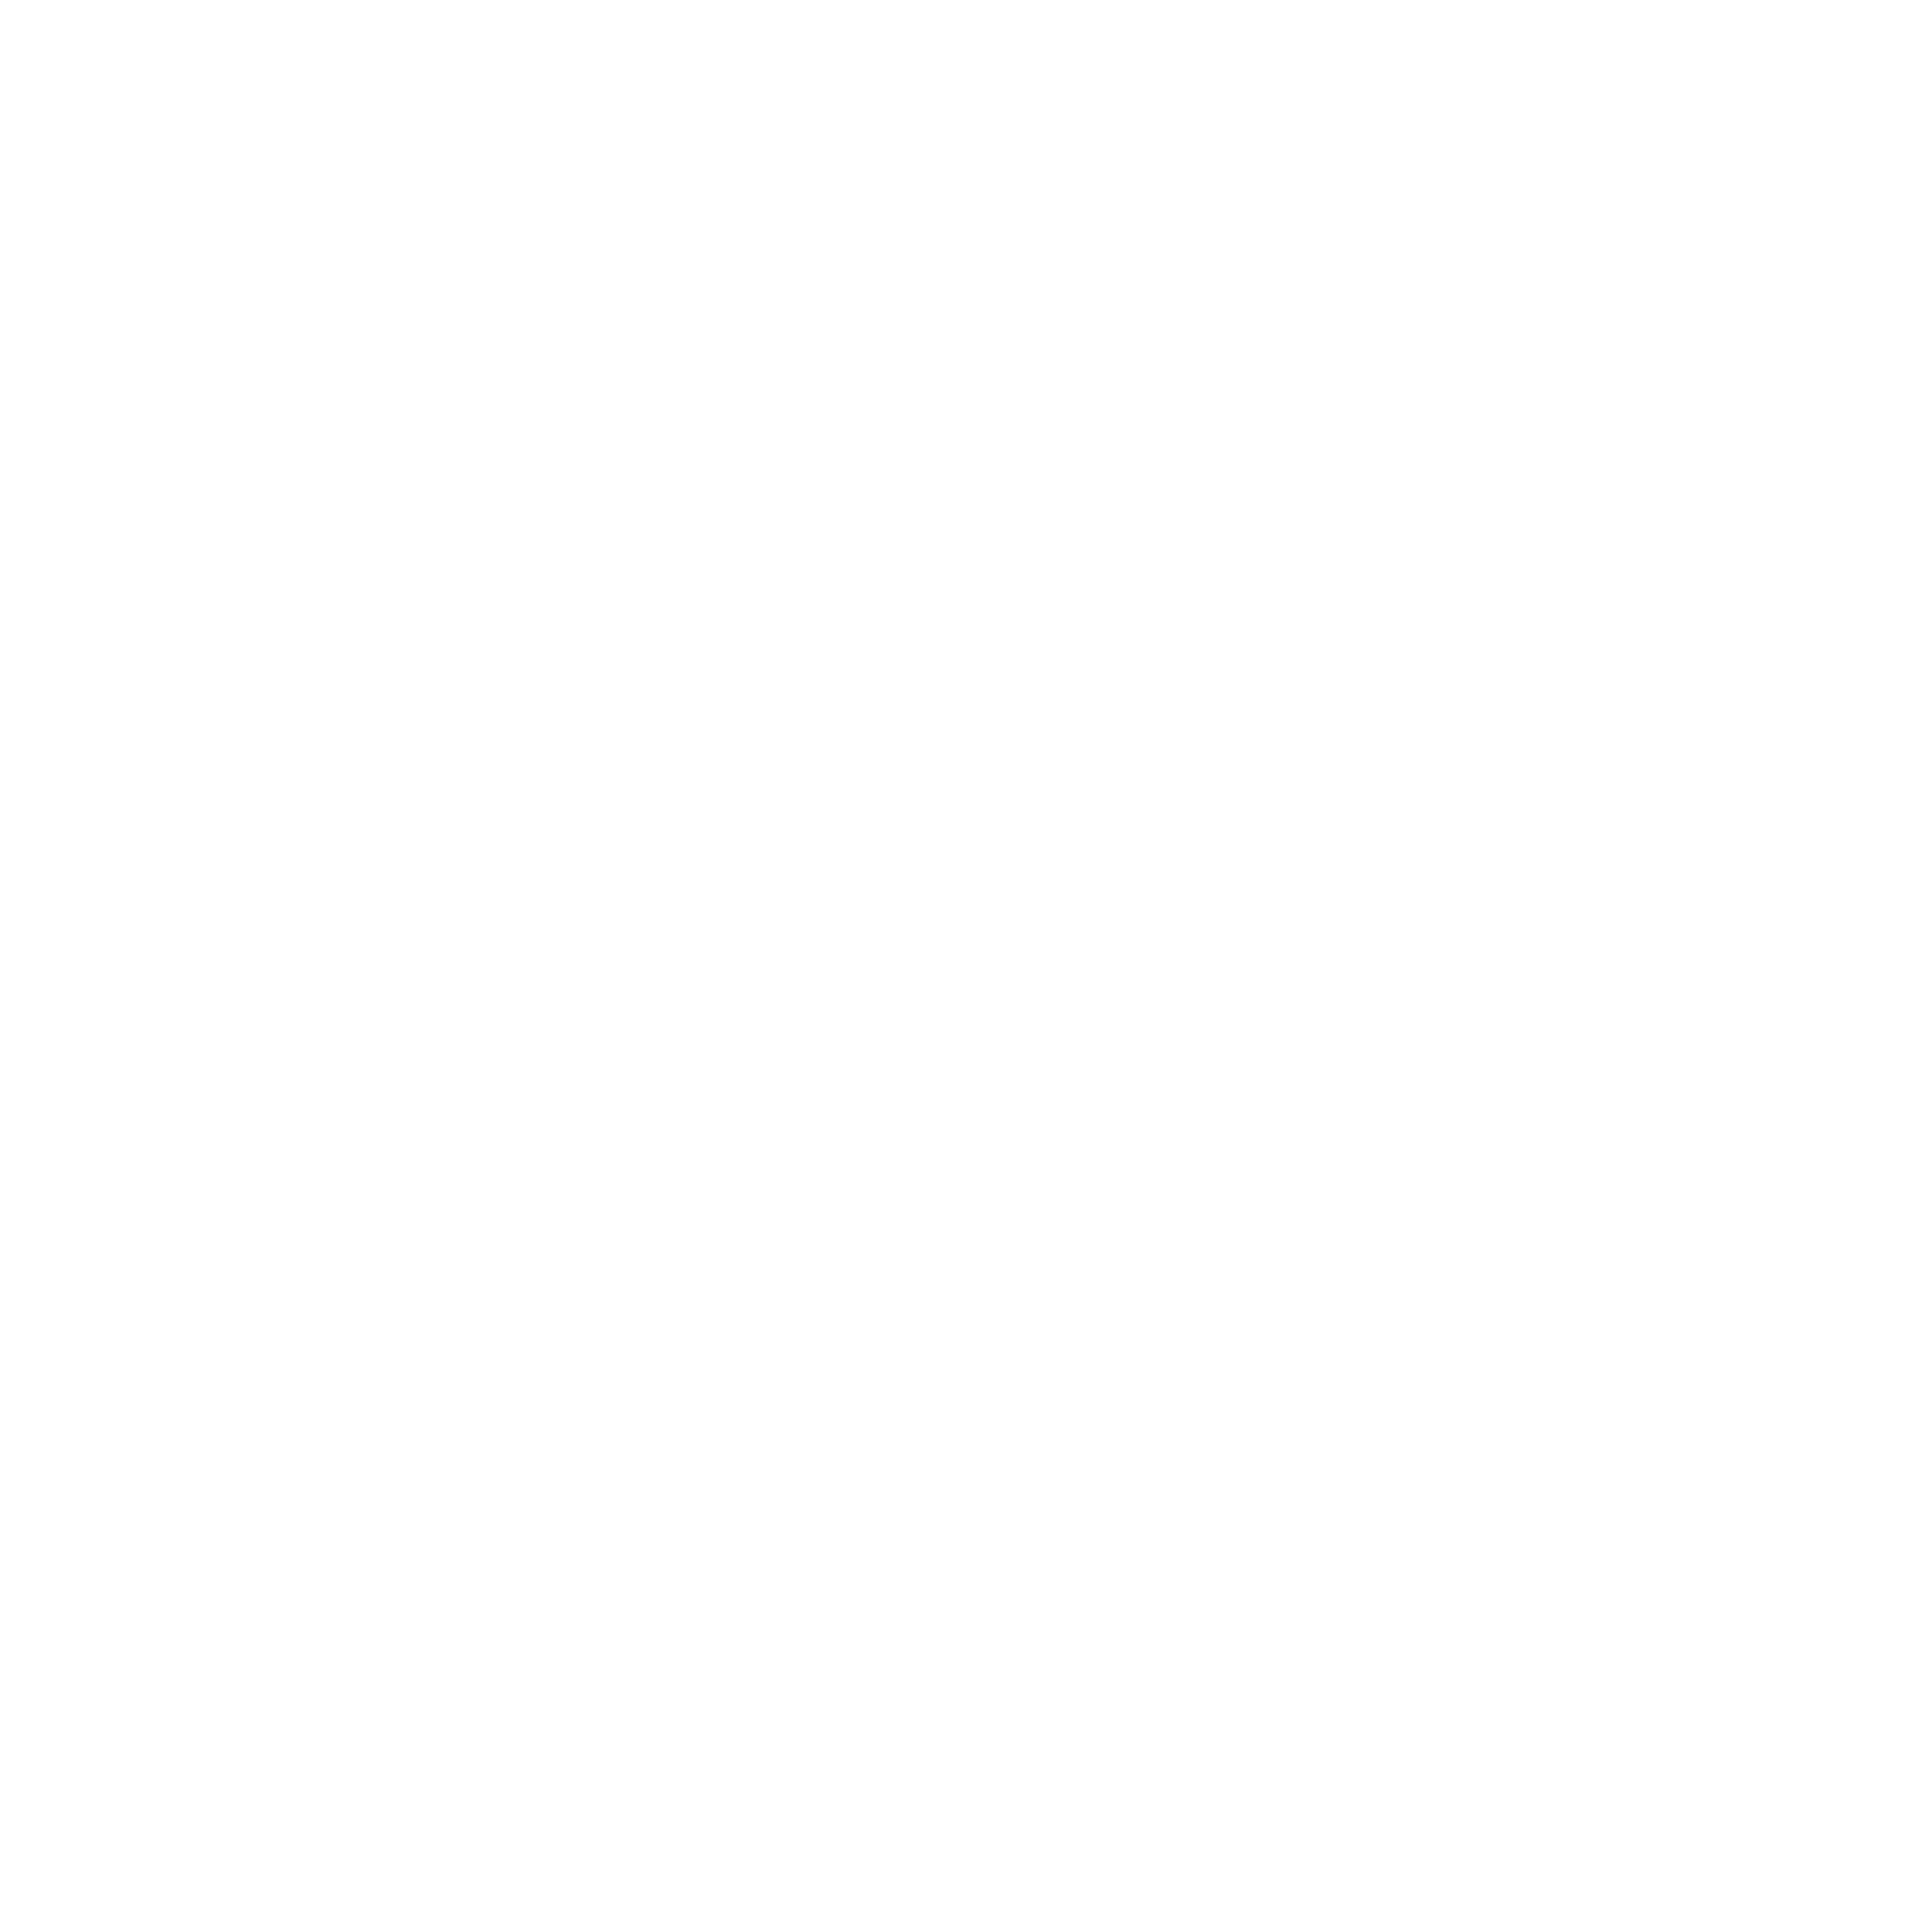 Dot background png. Dots for clip art